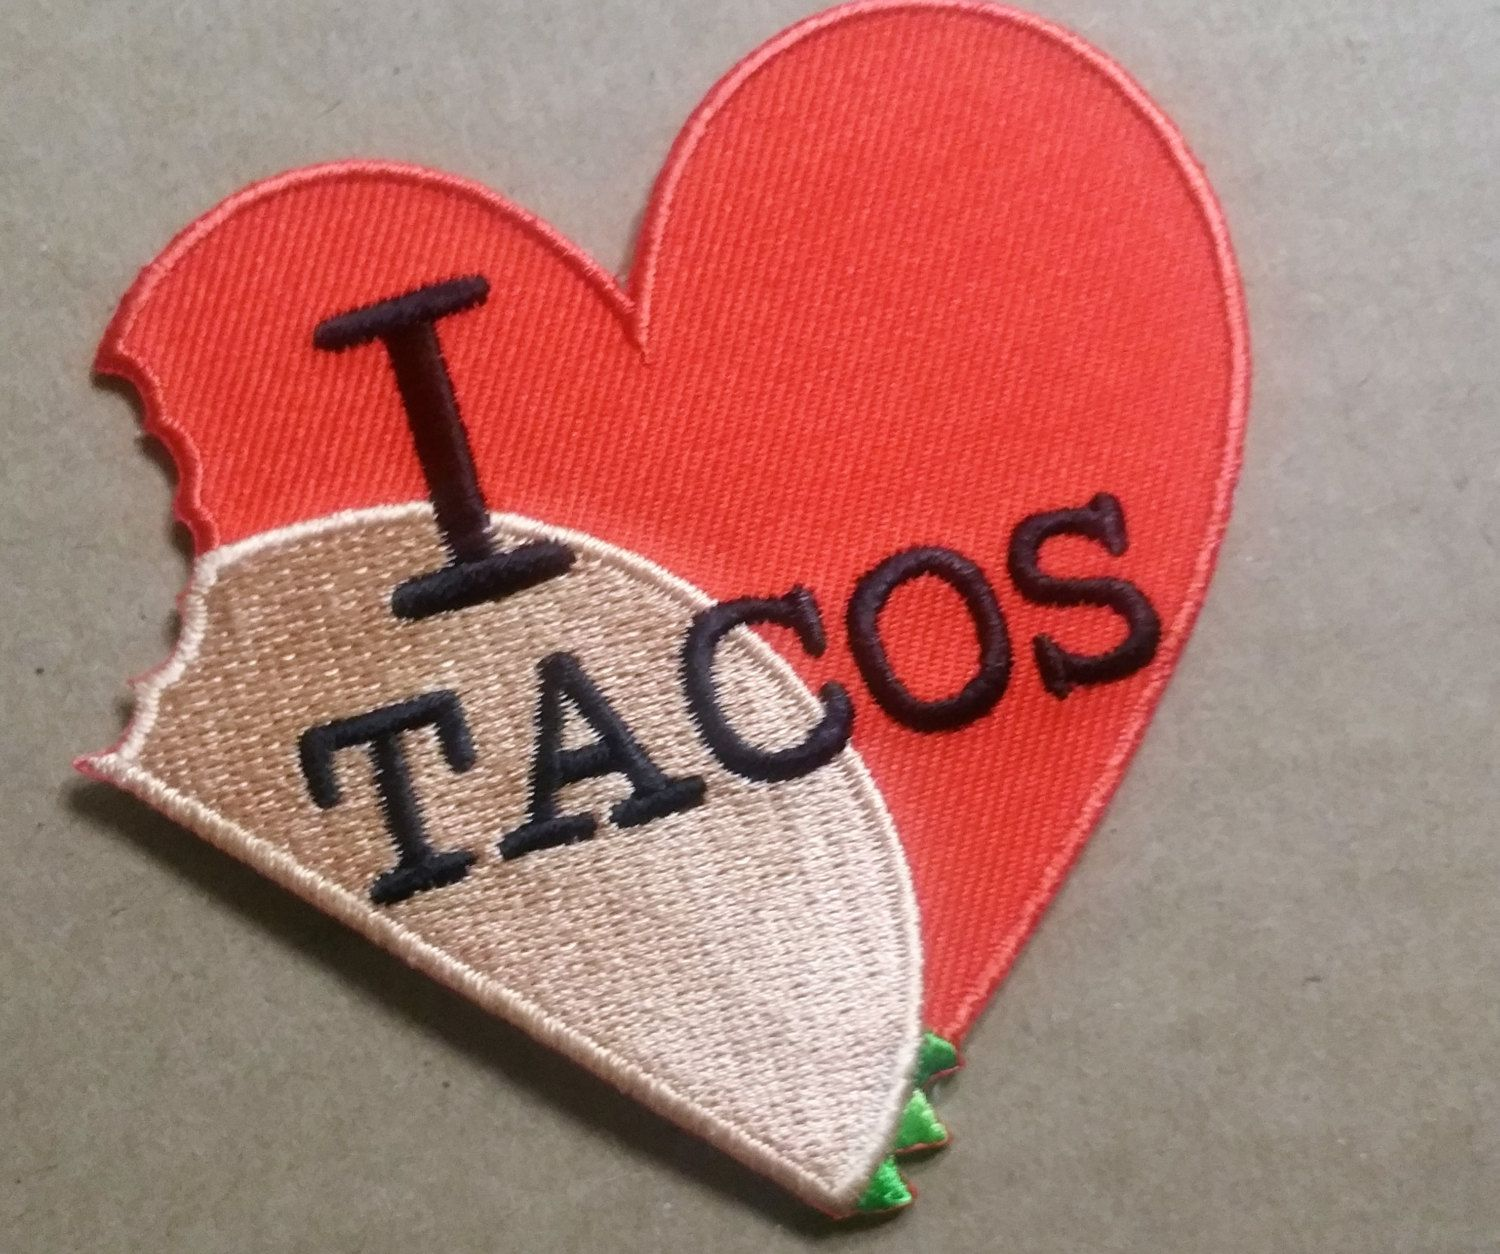 Who doesn't #love #tacos : #FreeUSShipping #Ironon #Patch #ILoveTacos #tacotuesday #linkbellow #forsale #buyitnow  https://www.etsy.com/listing/499438612/iron-on-patch-i-love-tacos-heart-375-x?utm_campaign=crowdfire&utm_content=crowdfire&utm_medium=social&utm_source=pinterest